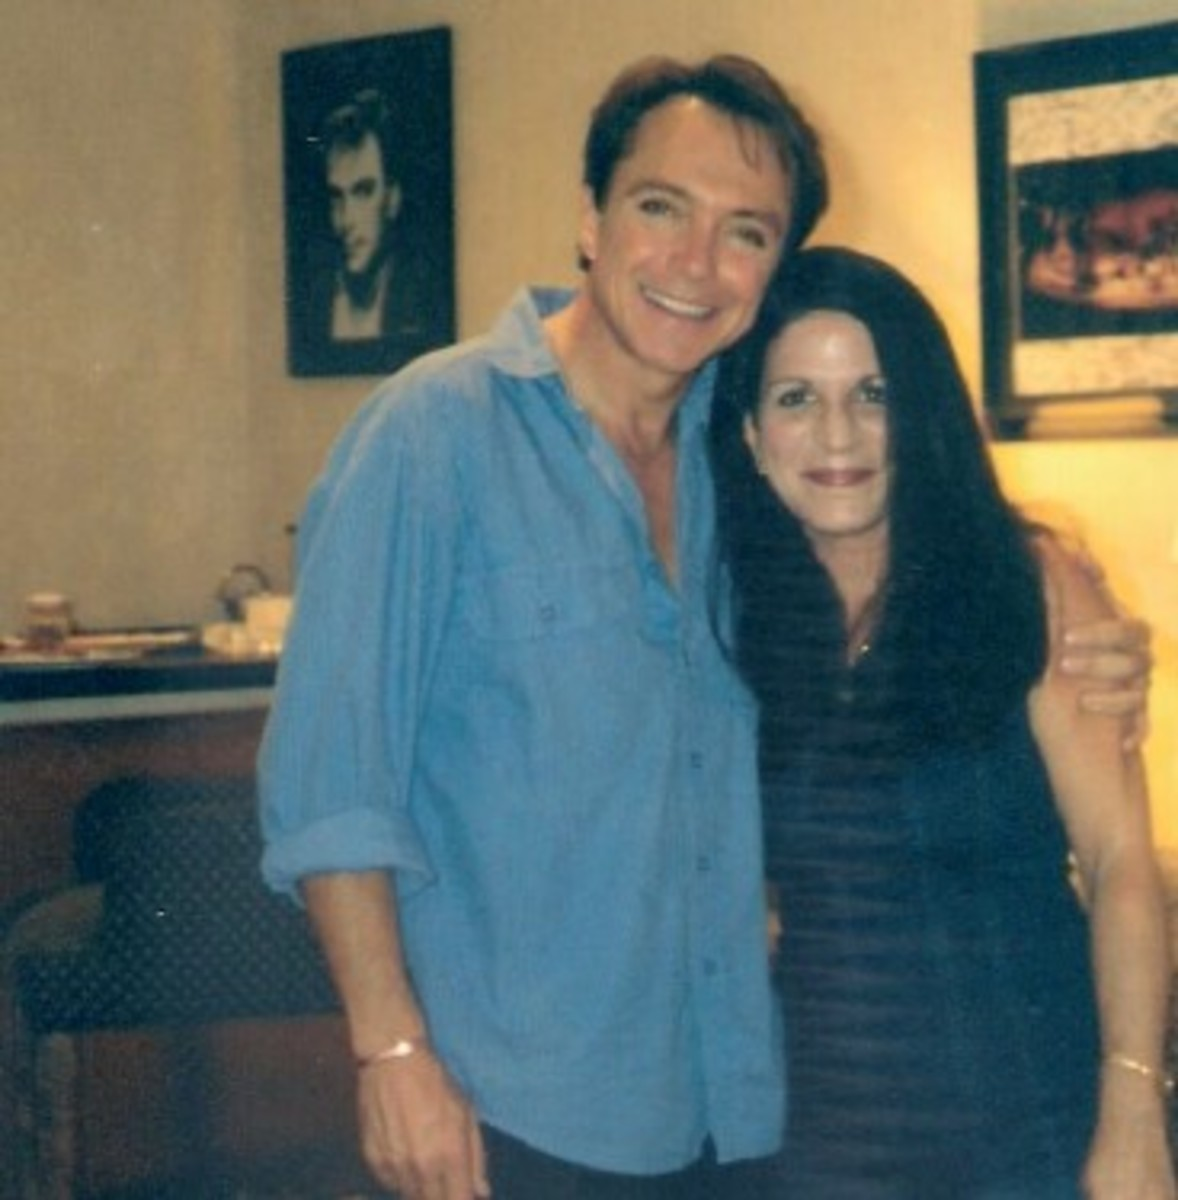 David with Yasmin Wendling in Las Vegas, courtesy of Louise Poynton and Unicorn